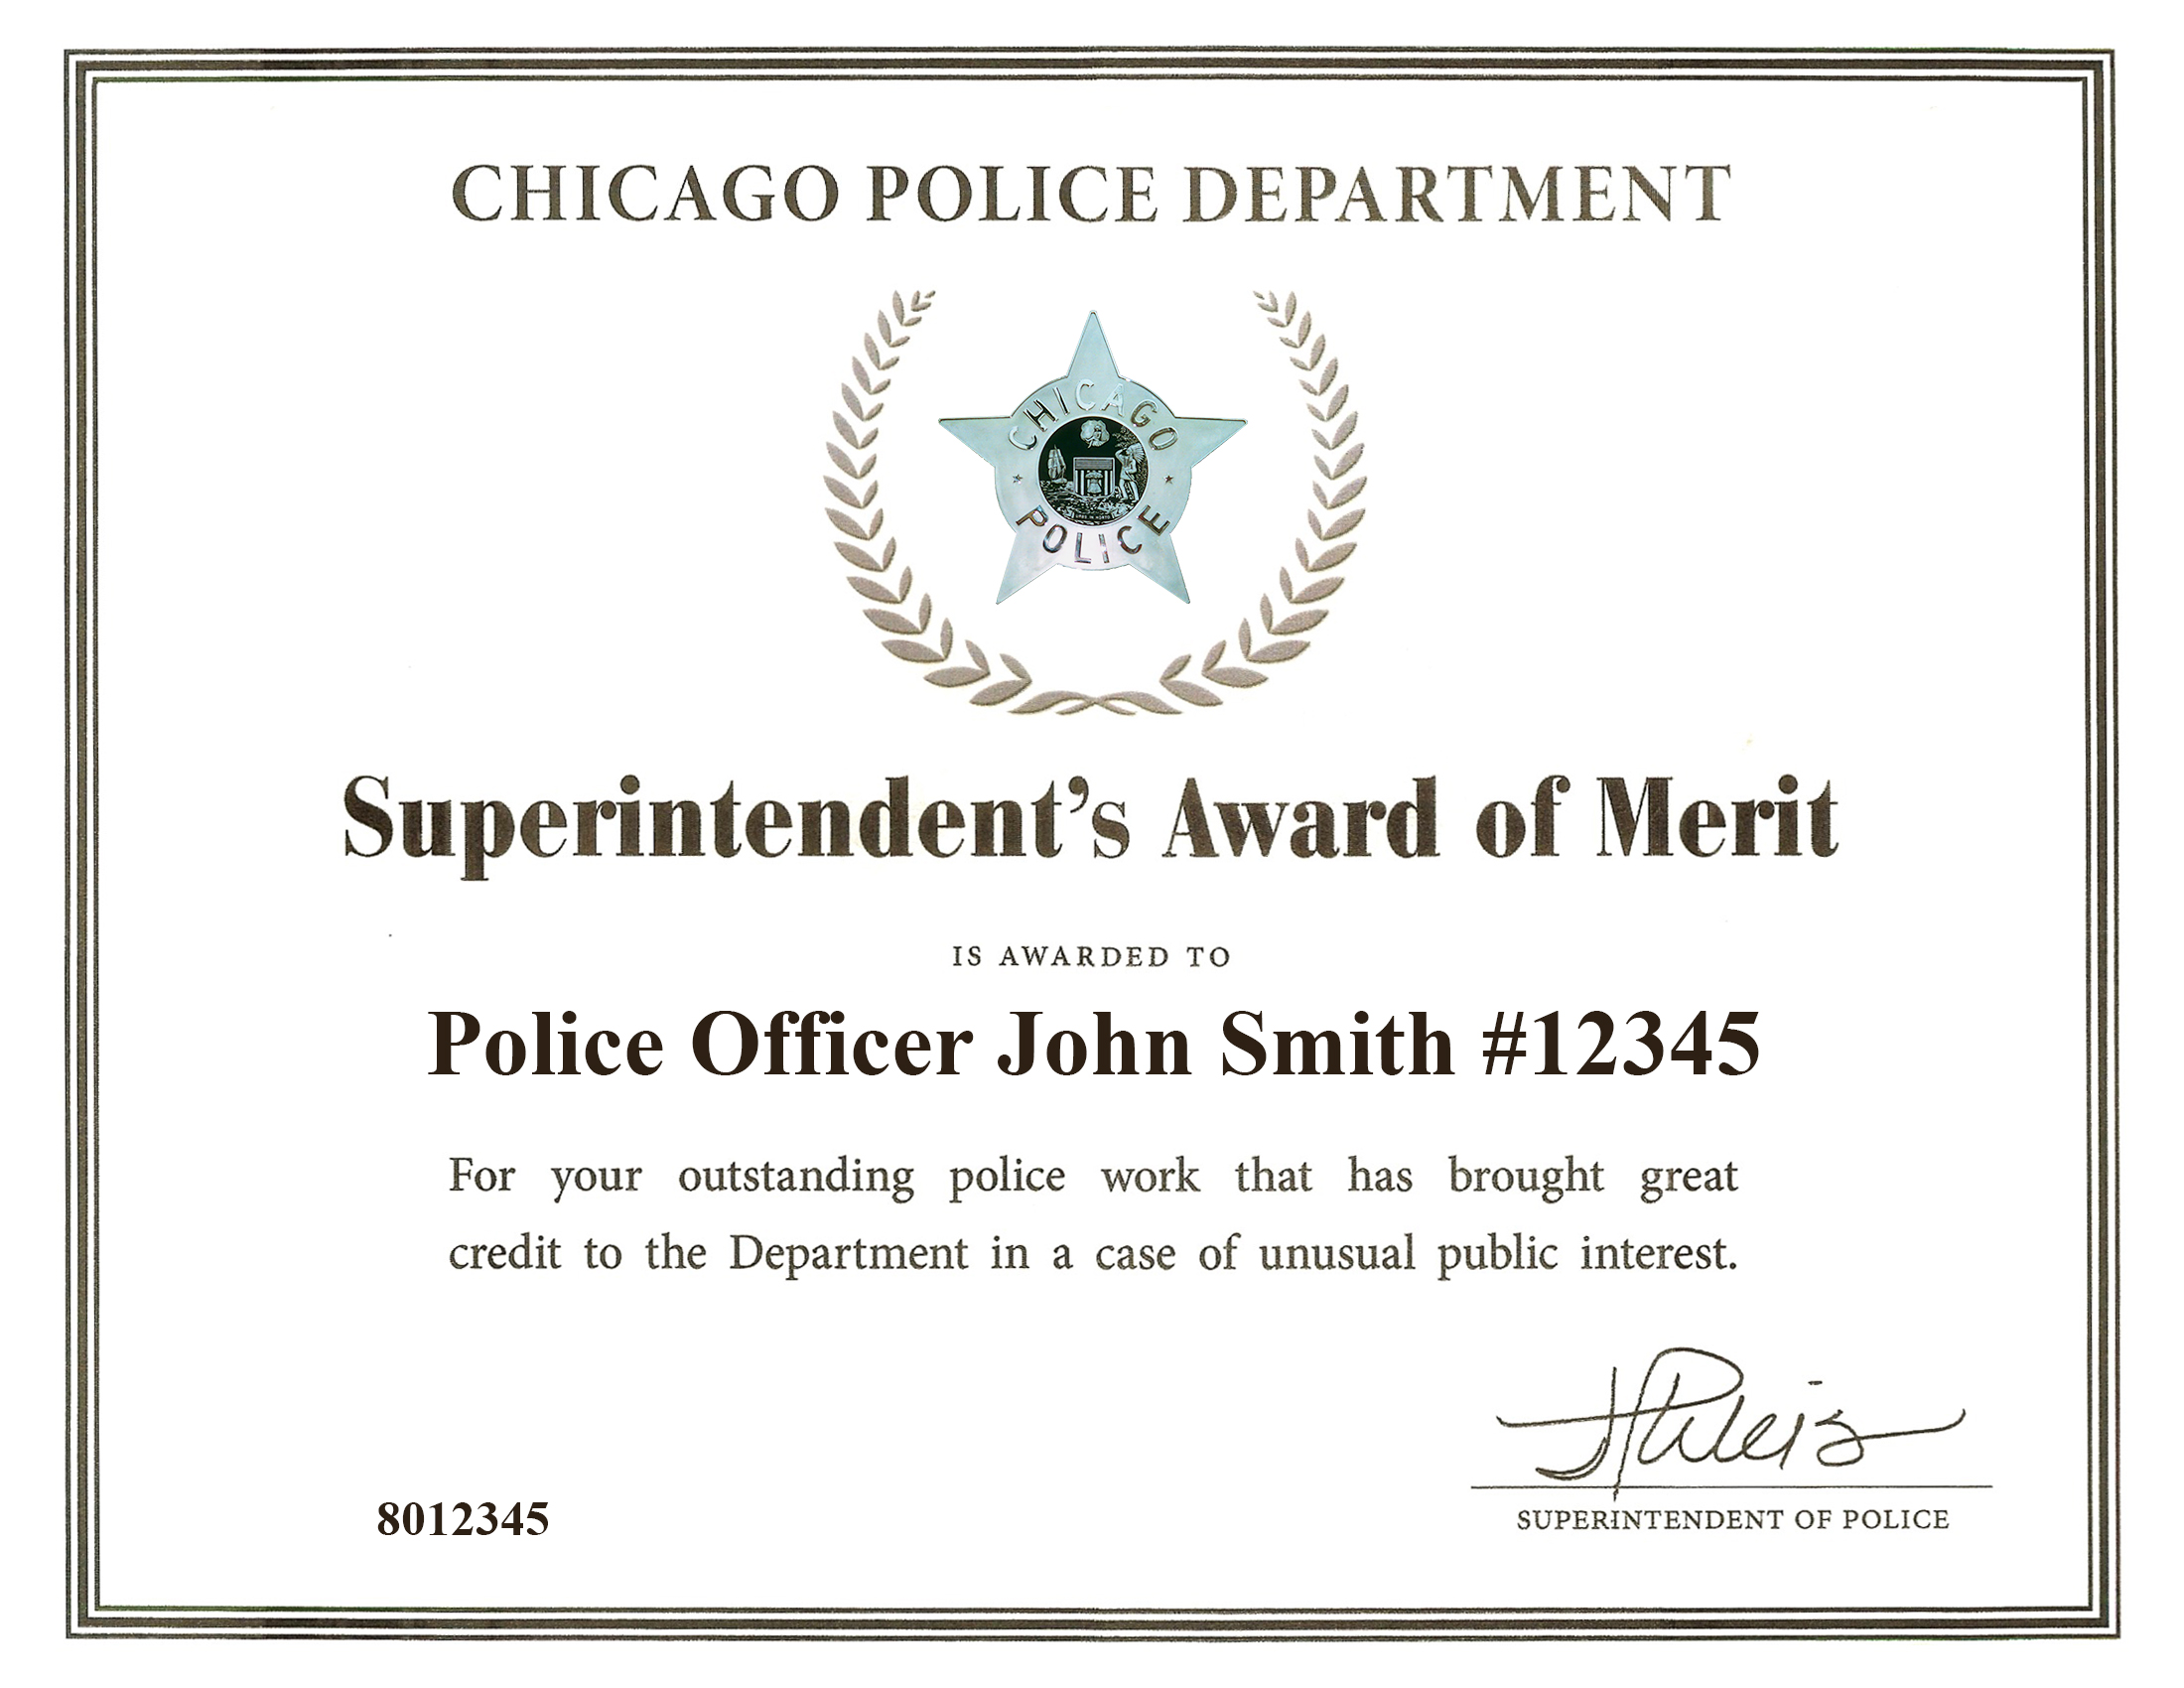 Superintendent's Award of Merit Certificate